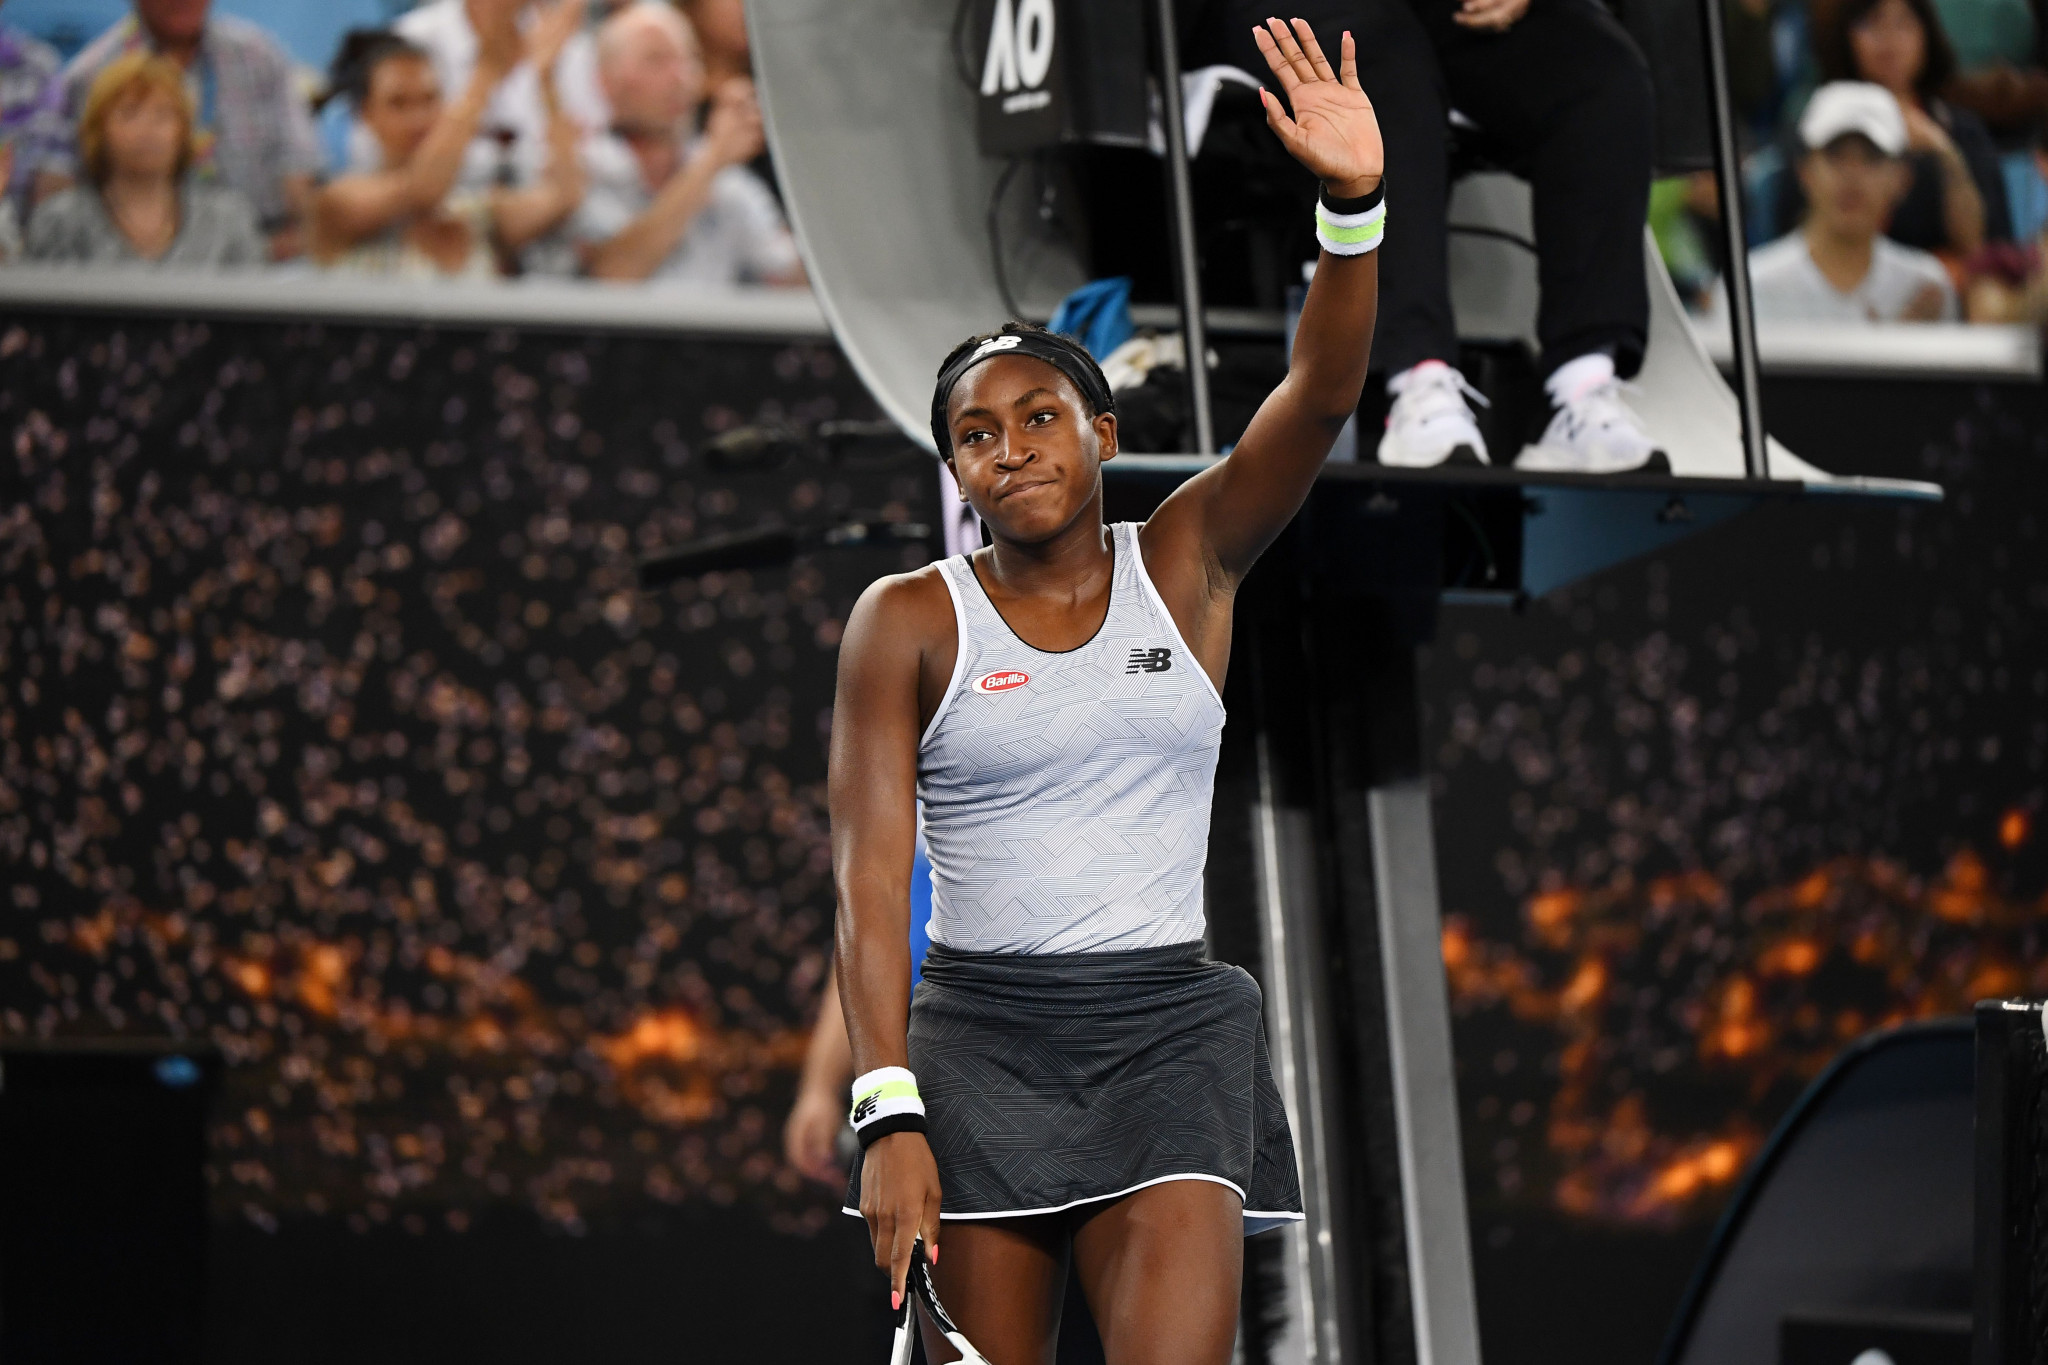 Fifteen-year-old Coco Gauff earned another victory over Venus Williams ©Getty Images